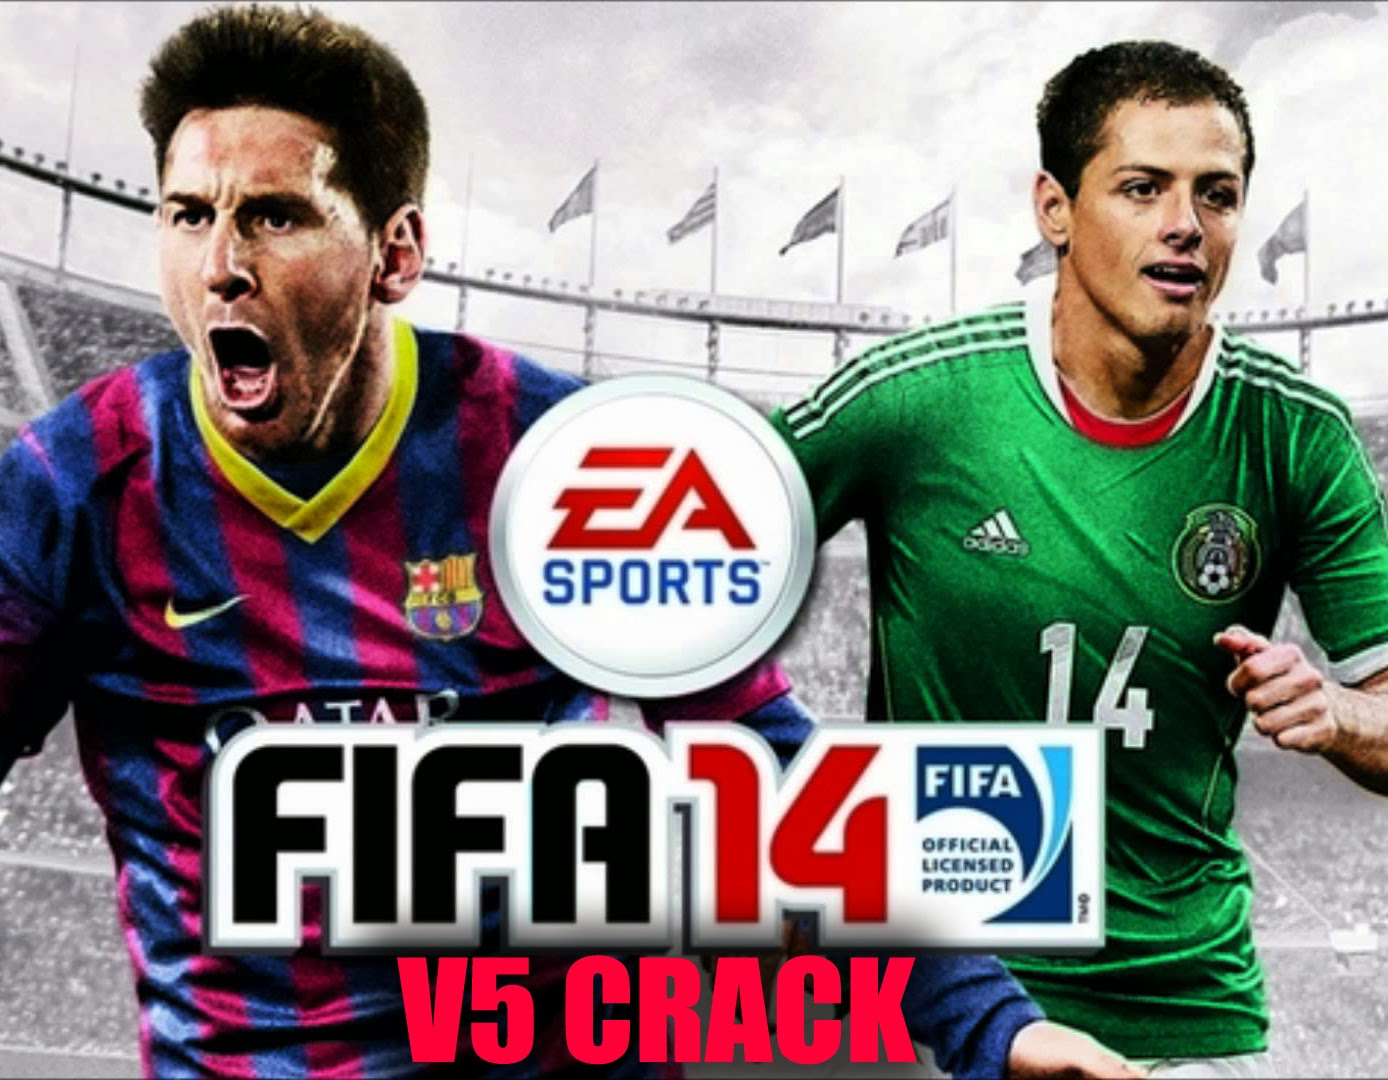 fifa 14 download pc free full version with crack